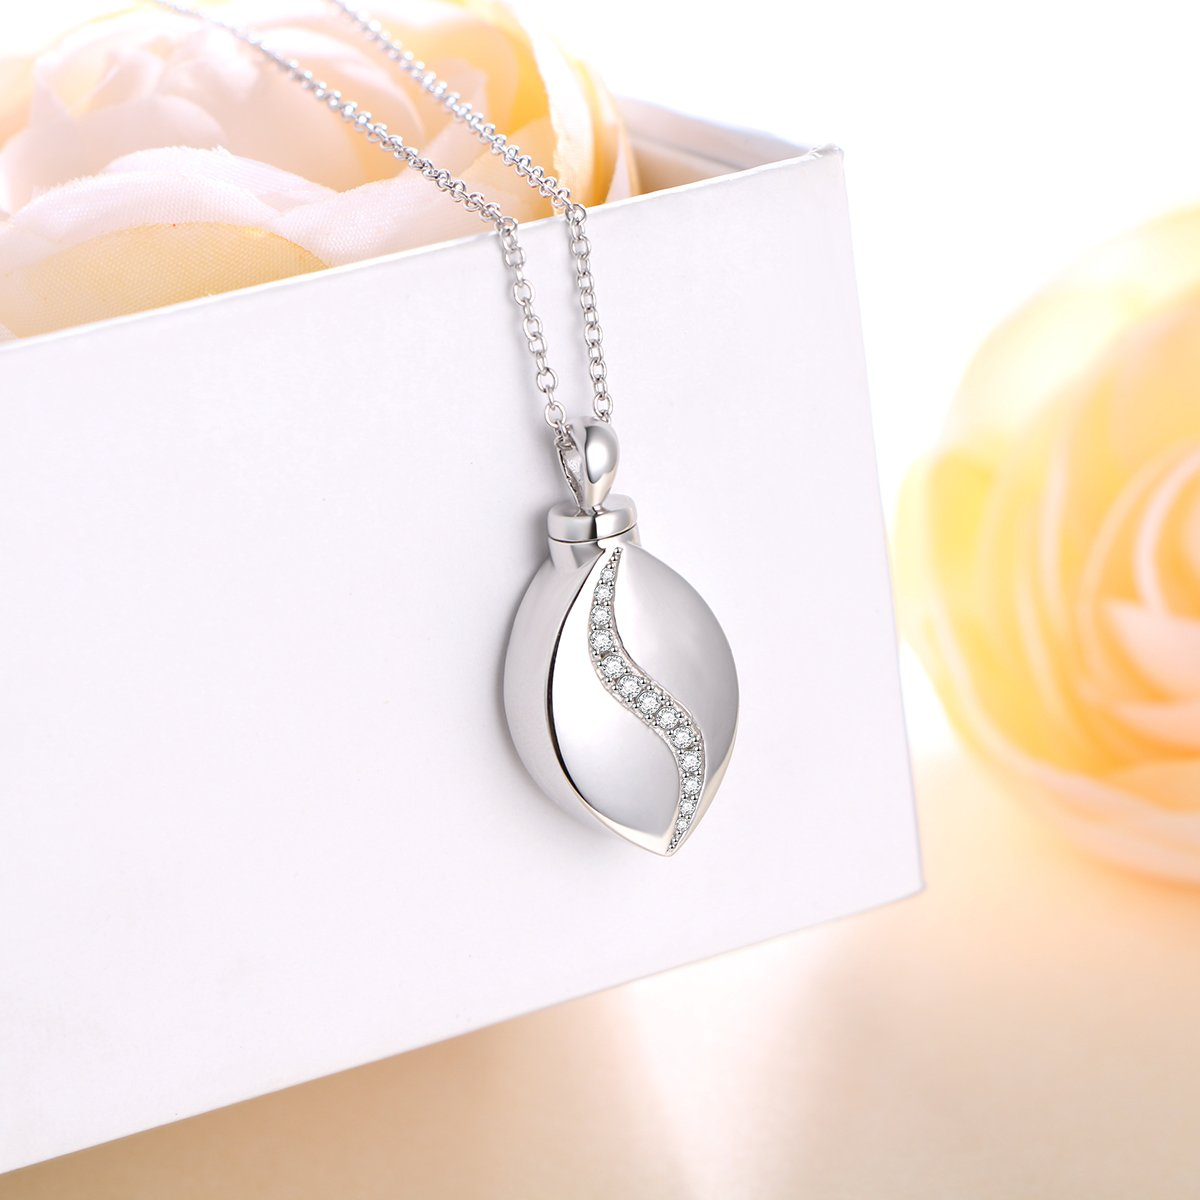 20 SILVER MOUNTAIN 925 Sterling Silver Cremation Jewelry Forever in My Heart Ashes Keepsake Urns Pendant Necklace